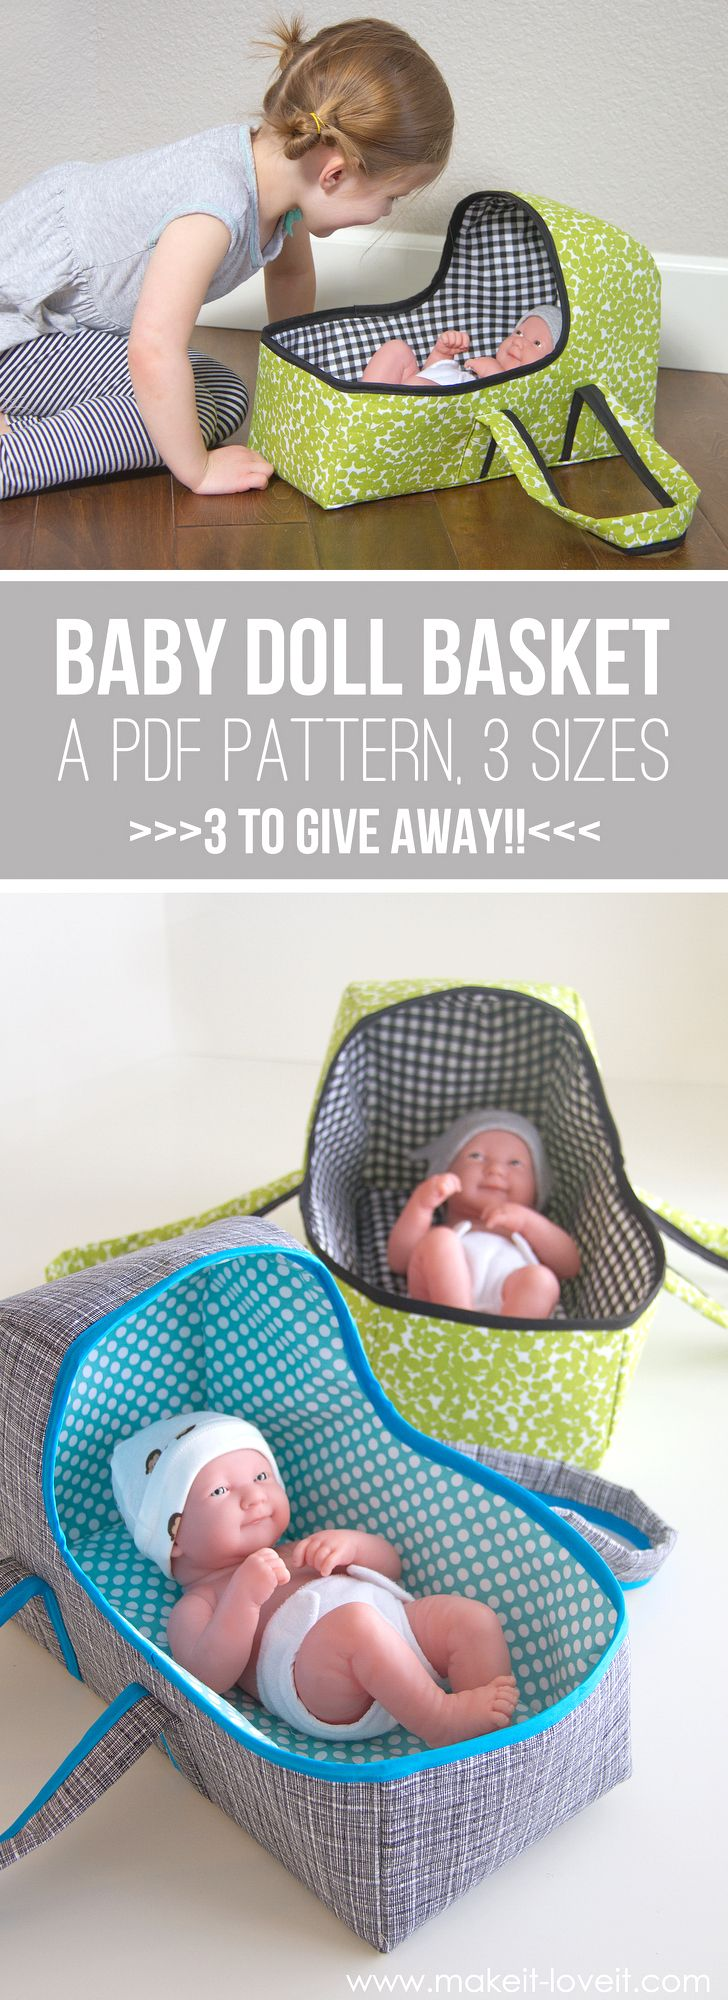 Baby Doll Basket Carrier...a PDF pattern, 3 sizes, plenty of pictures. 3 patterns to GIVE AWAY! | via Make It and Love It #make